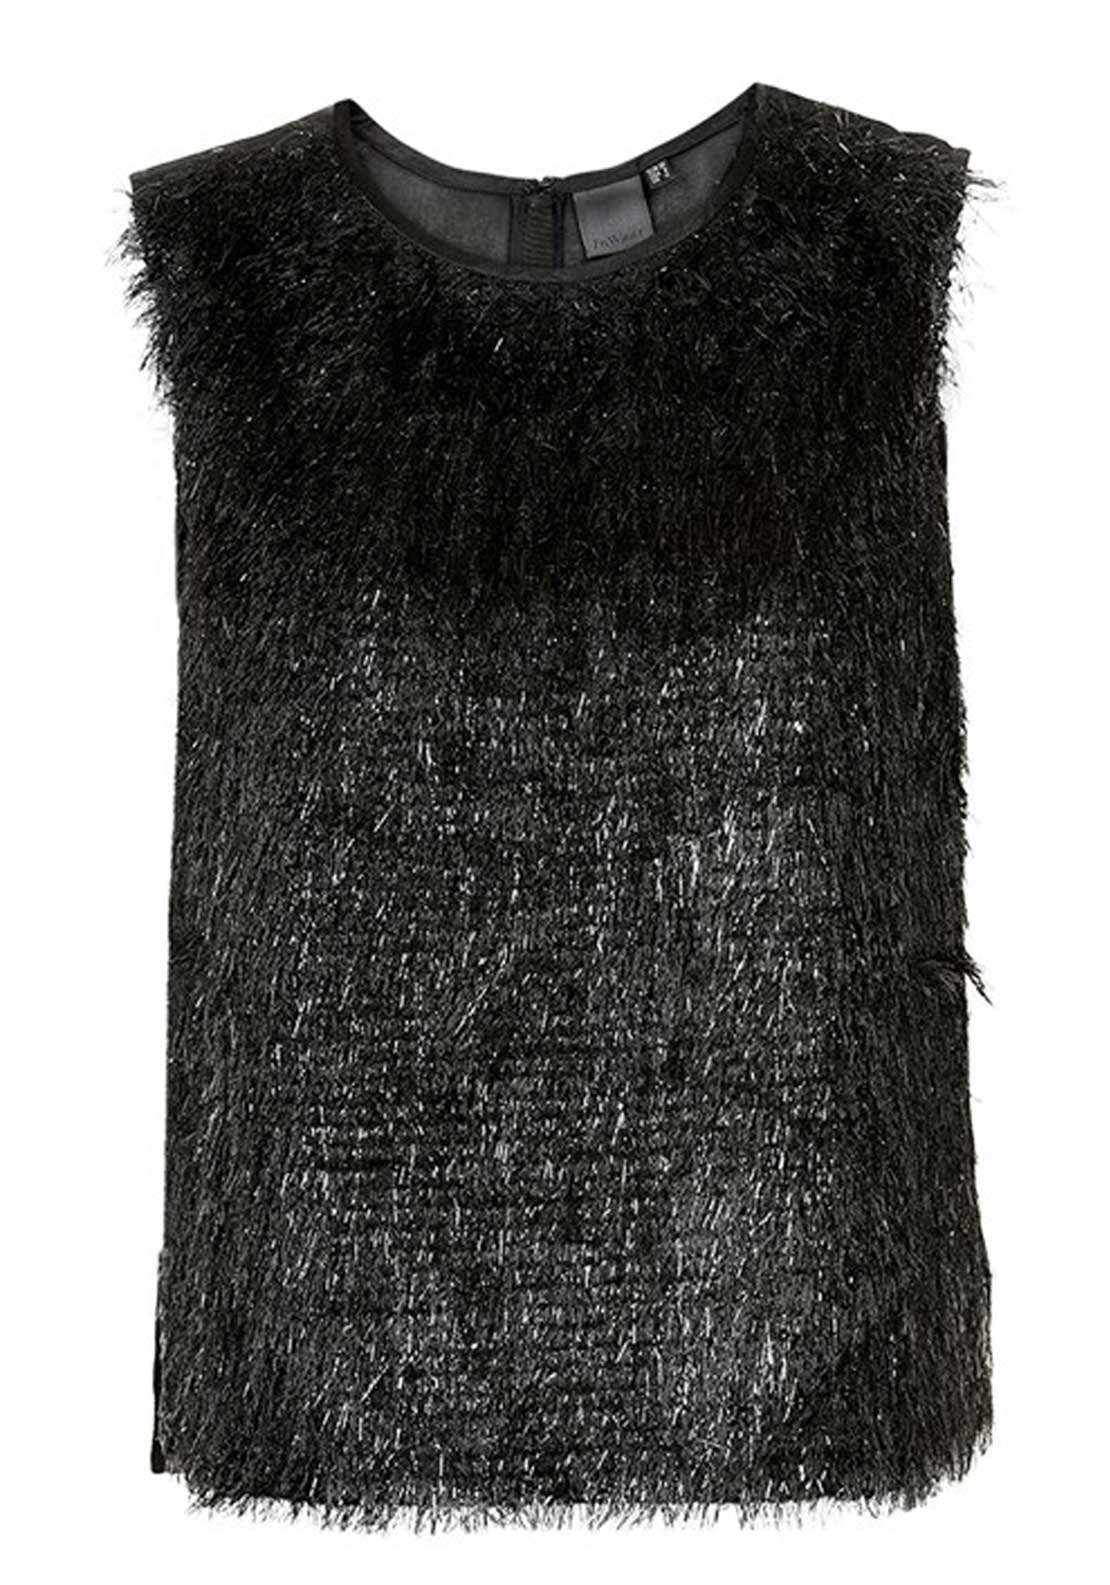 Inwear Ada Eyelash Yarn Sleeveless Top, Black